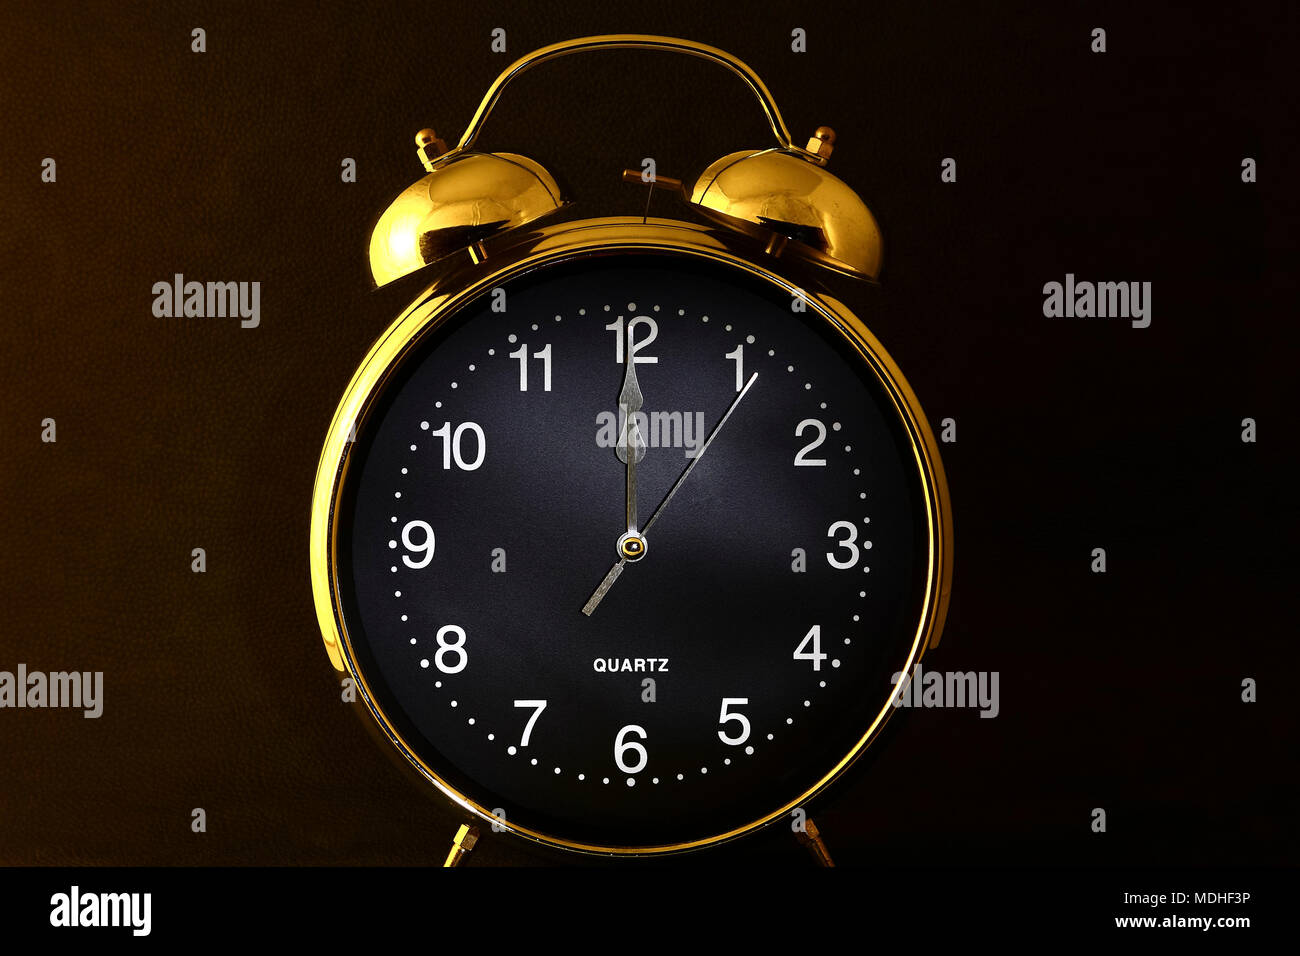 Old retro alarm clock with the hands set to 12:00 am or pm Stock